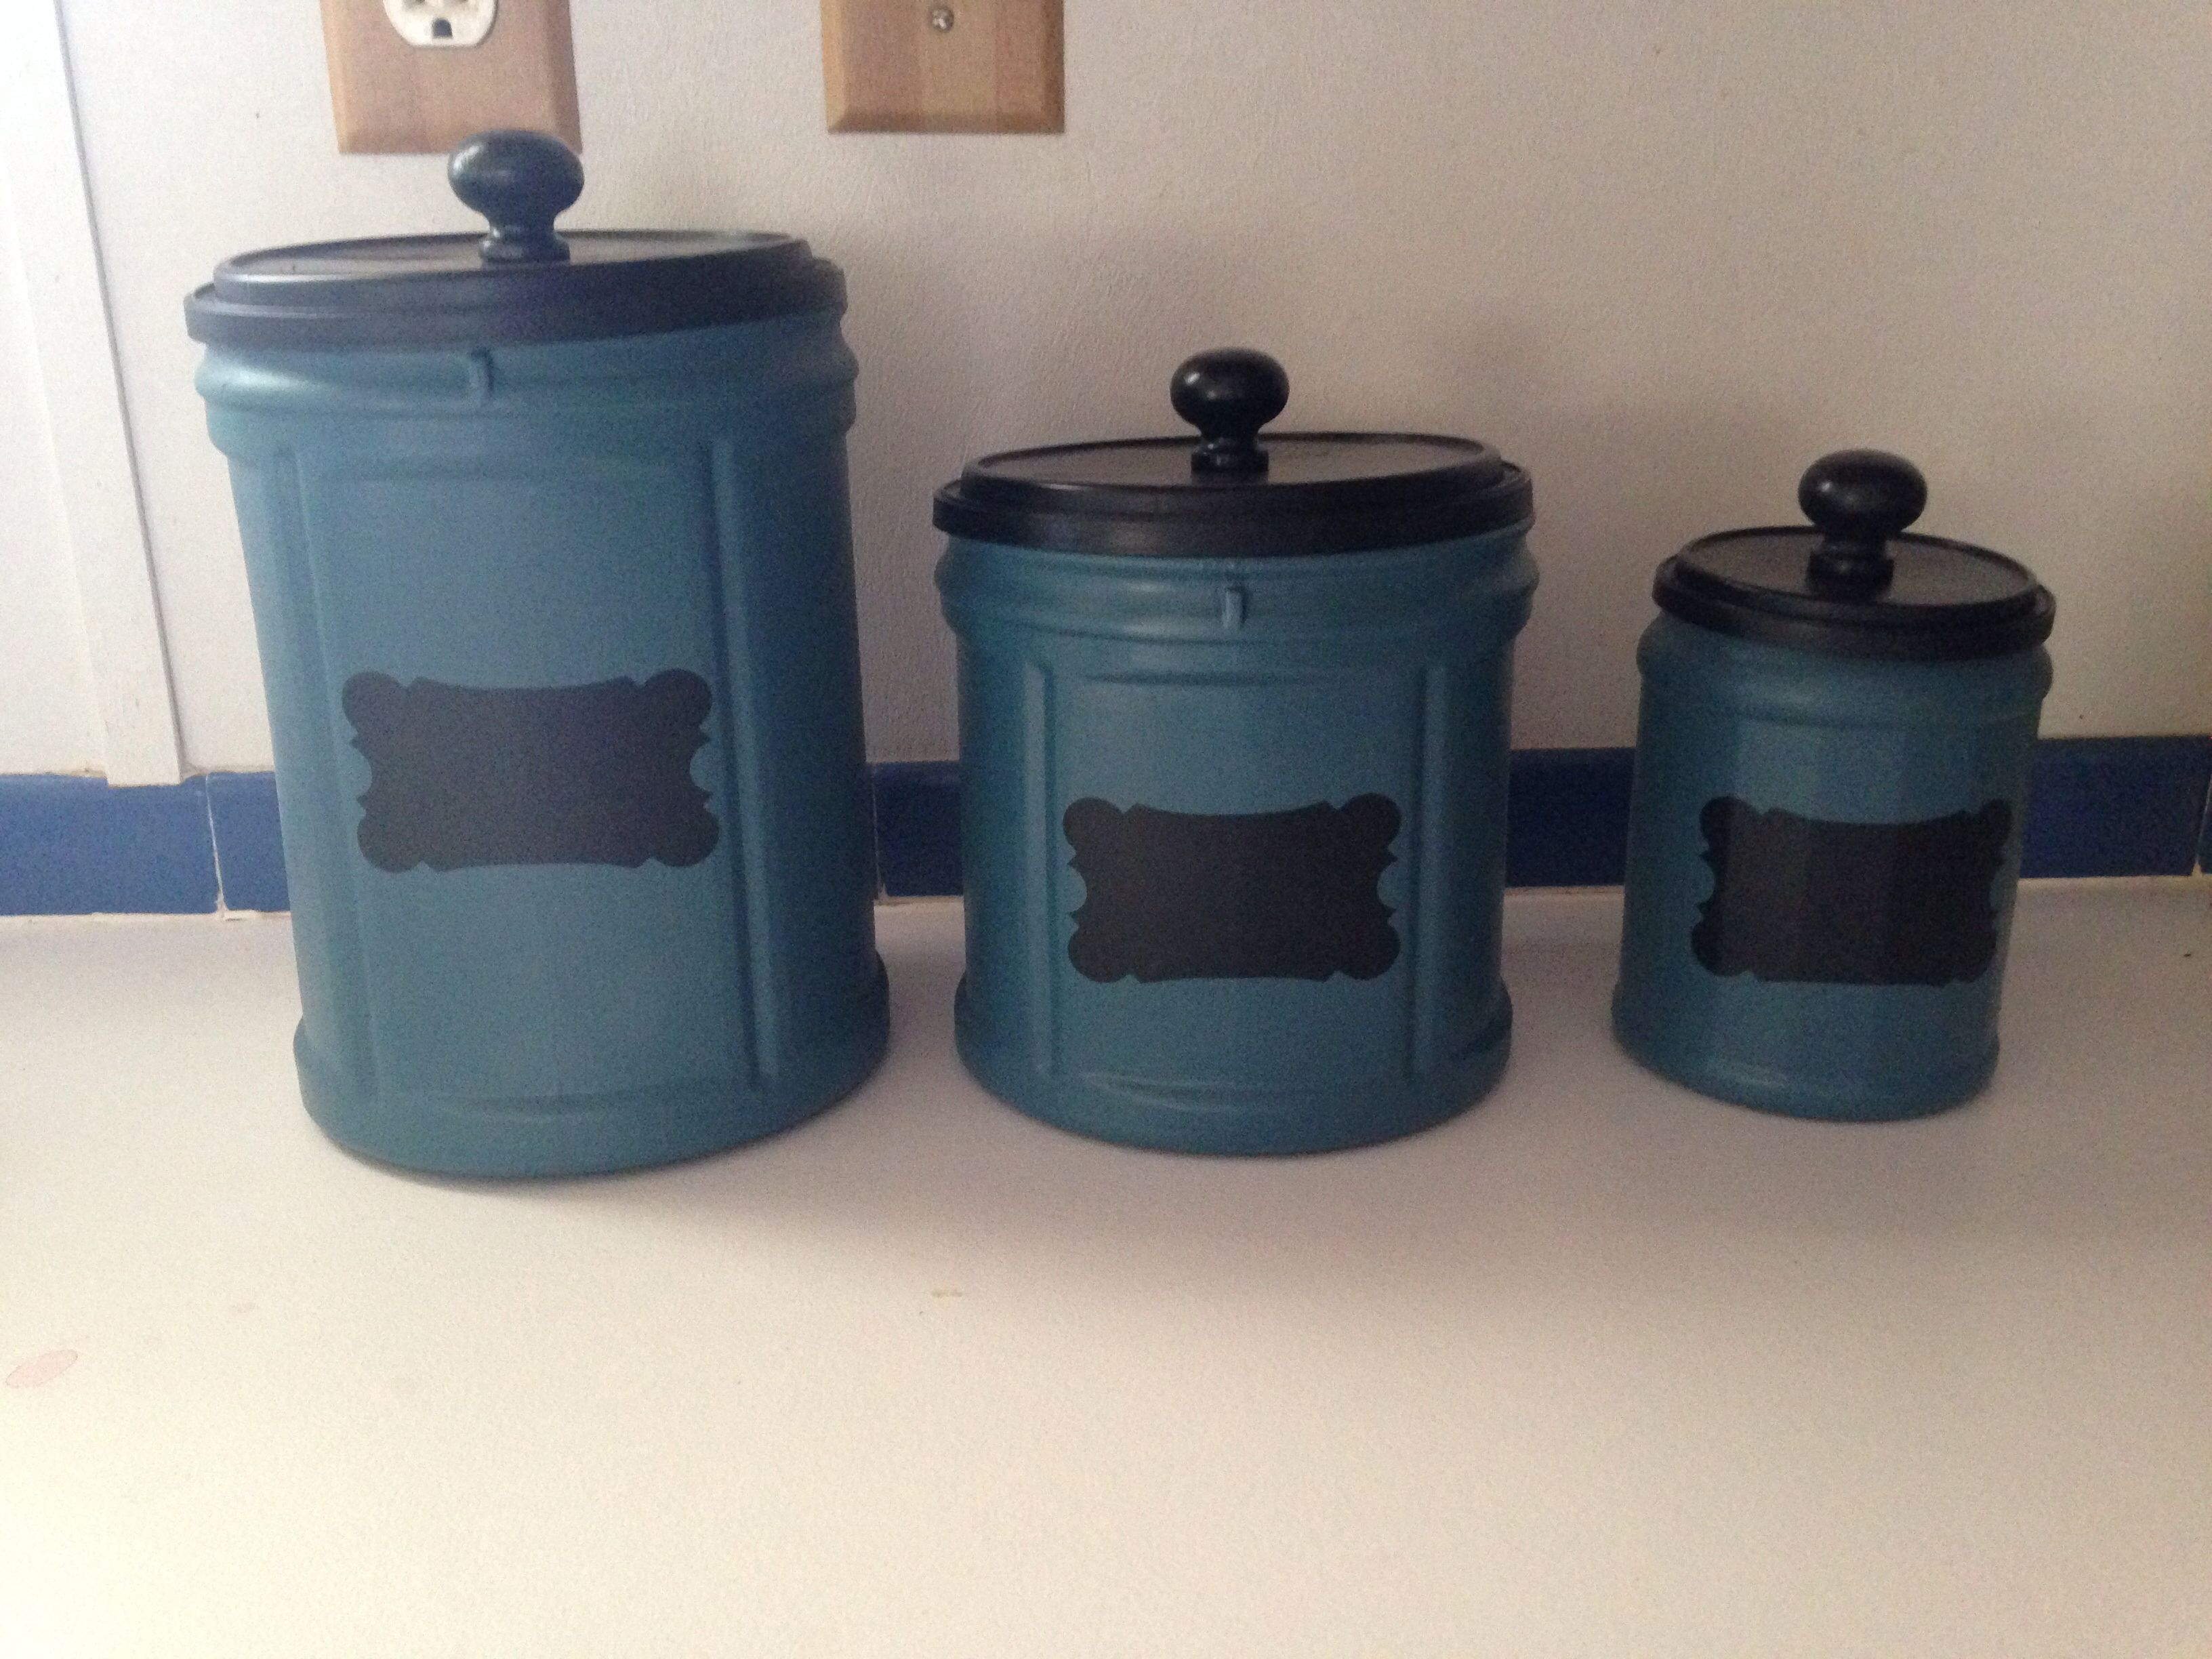 Attractive Trash Cans Upcycled Plastic Folger 39s Coffee Cans And Made Beautiful